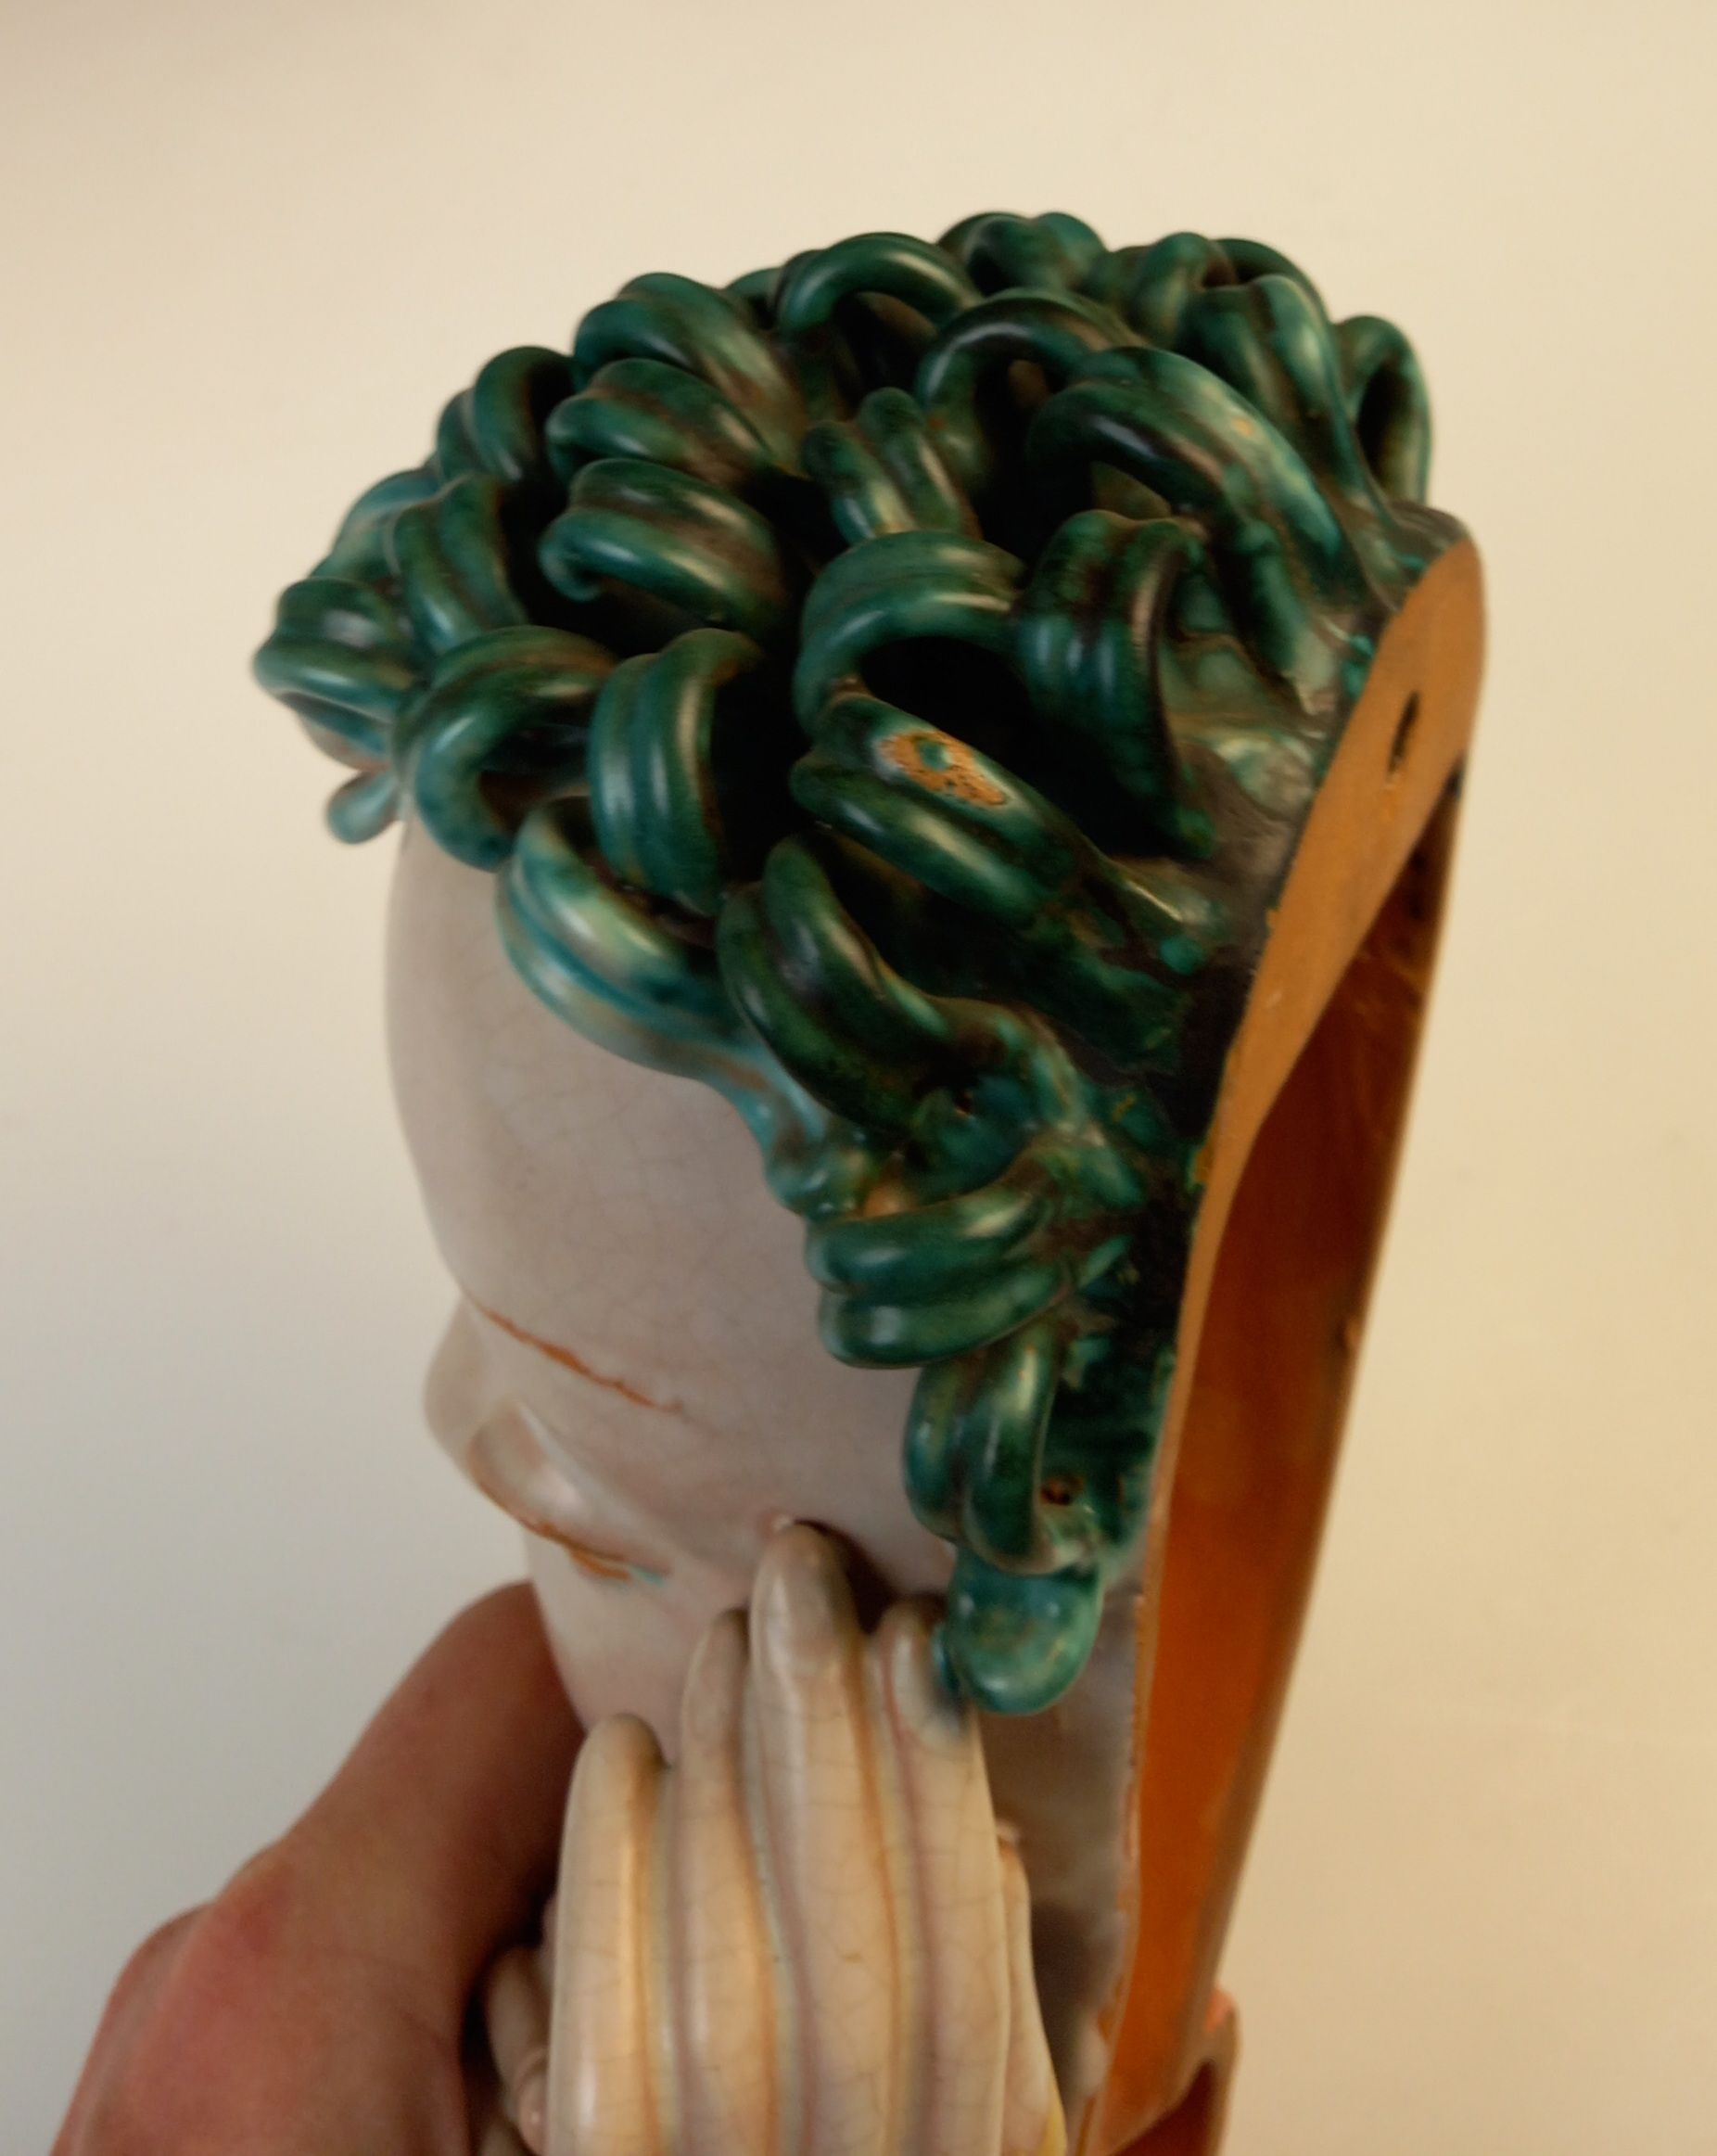 An Art Deco Goldscheider wall mask, early 20th century, modelled as a lady with blue curled hair and - Image 9 of 9